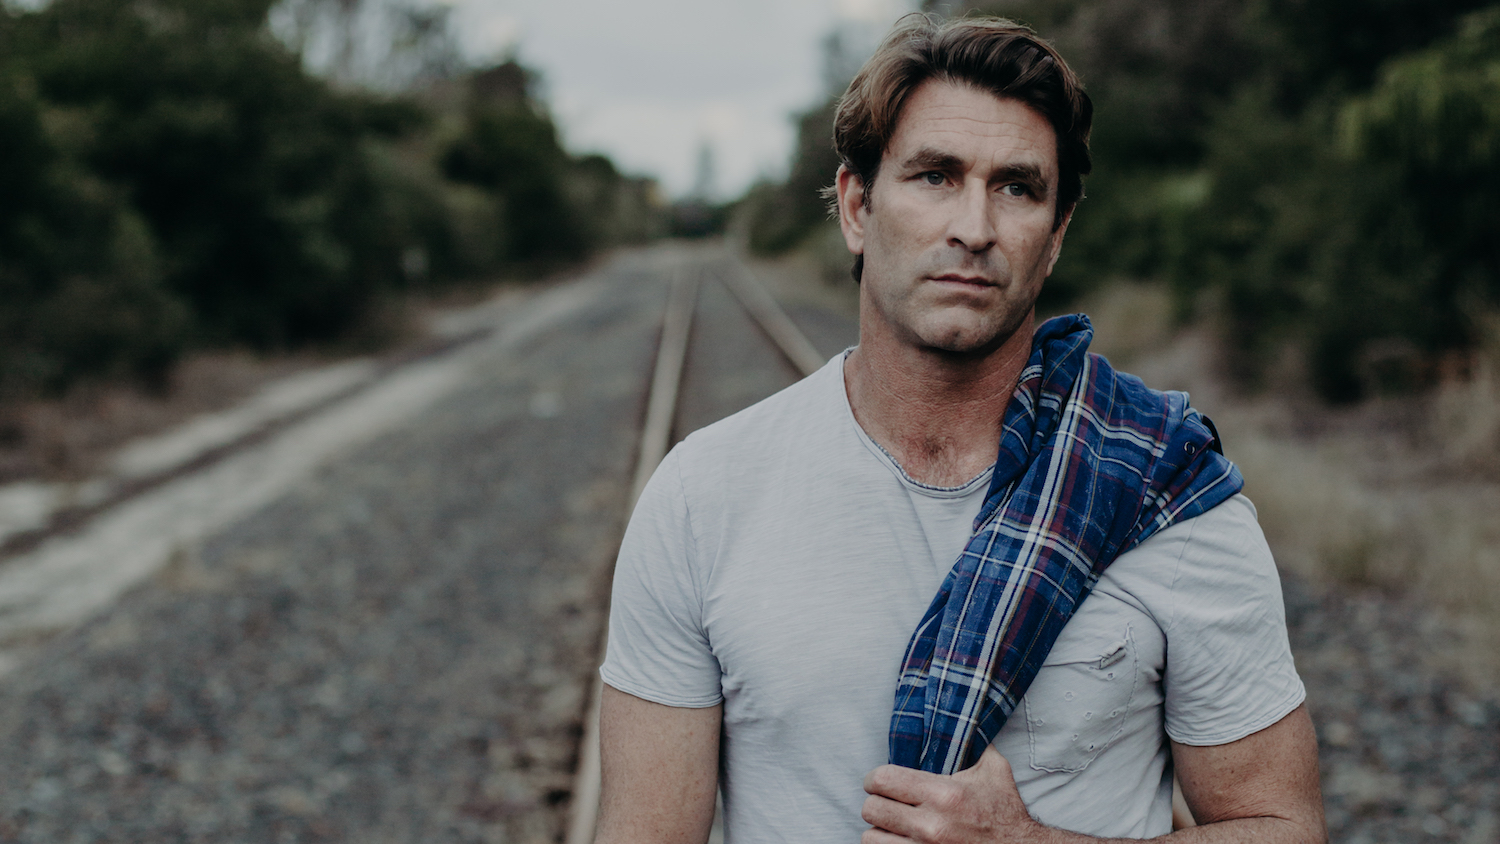 PETE MURRAY SHARES NEW SINGLE AND VIDEO 'FOUND MY PLACE'